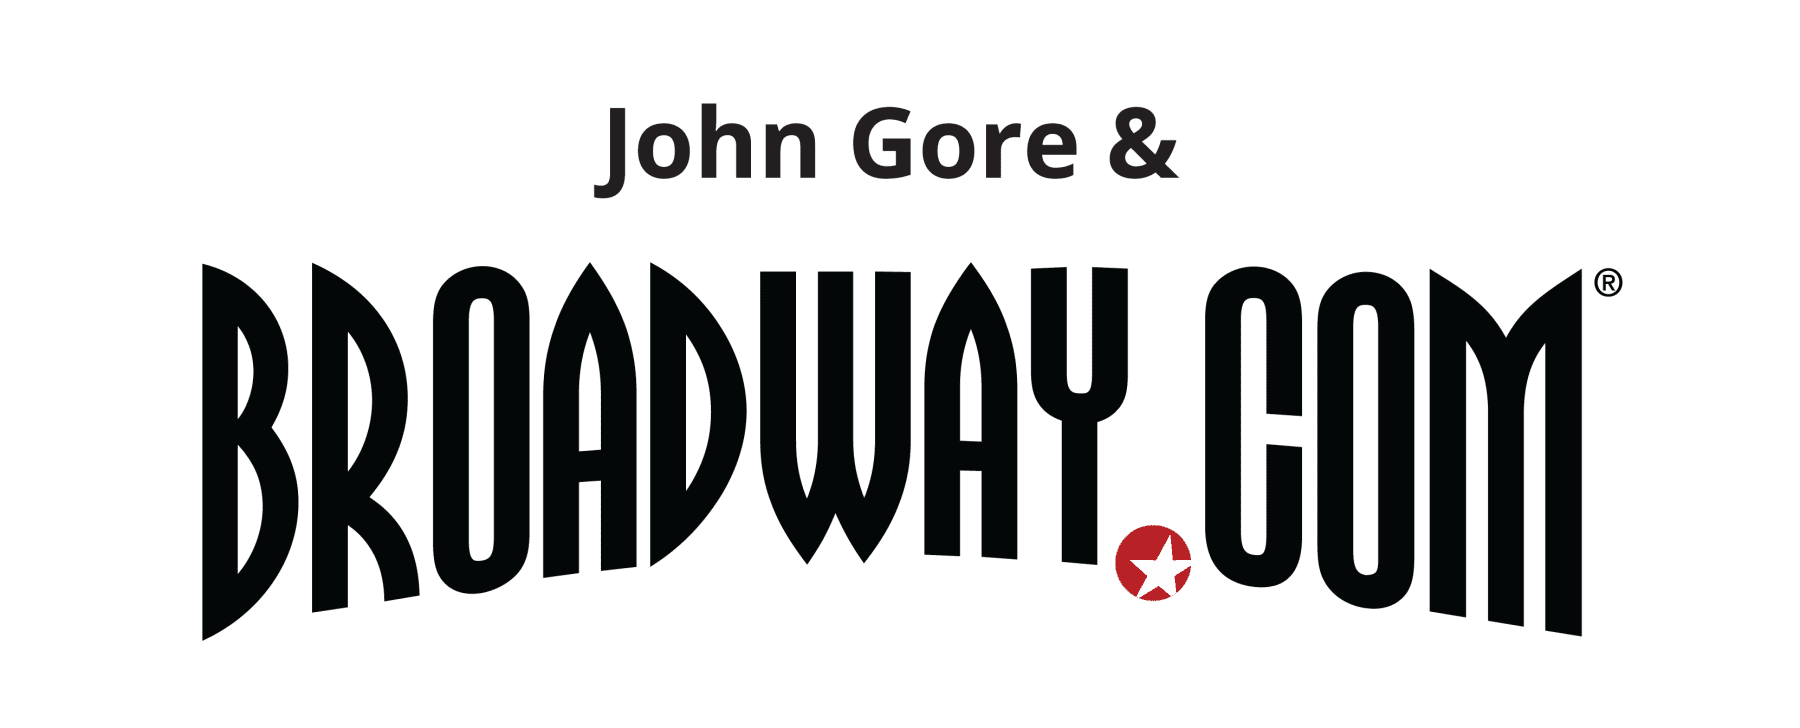 John Gore and Broadway.com